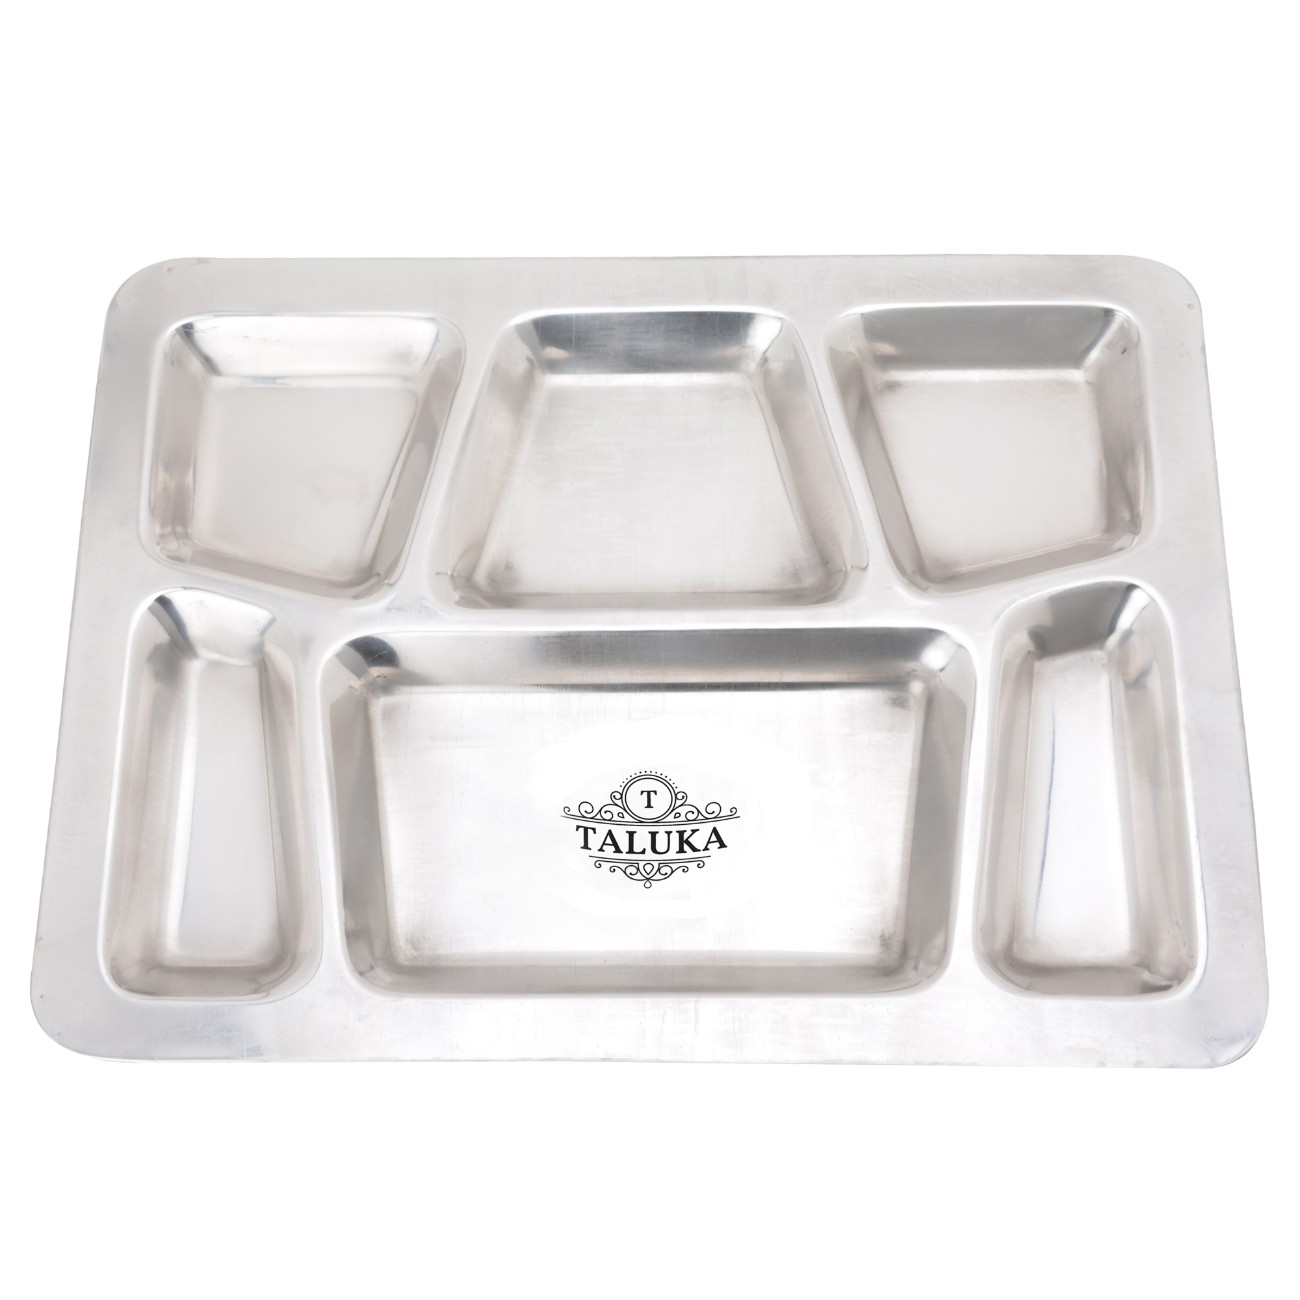 Stainless Steel 6IN1 Compartment Snacks Plate With Glass Spoon Dinner Thali Set